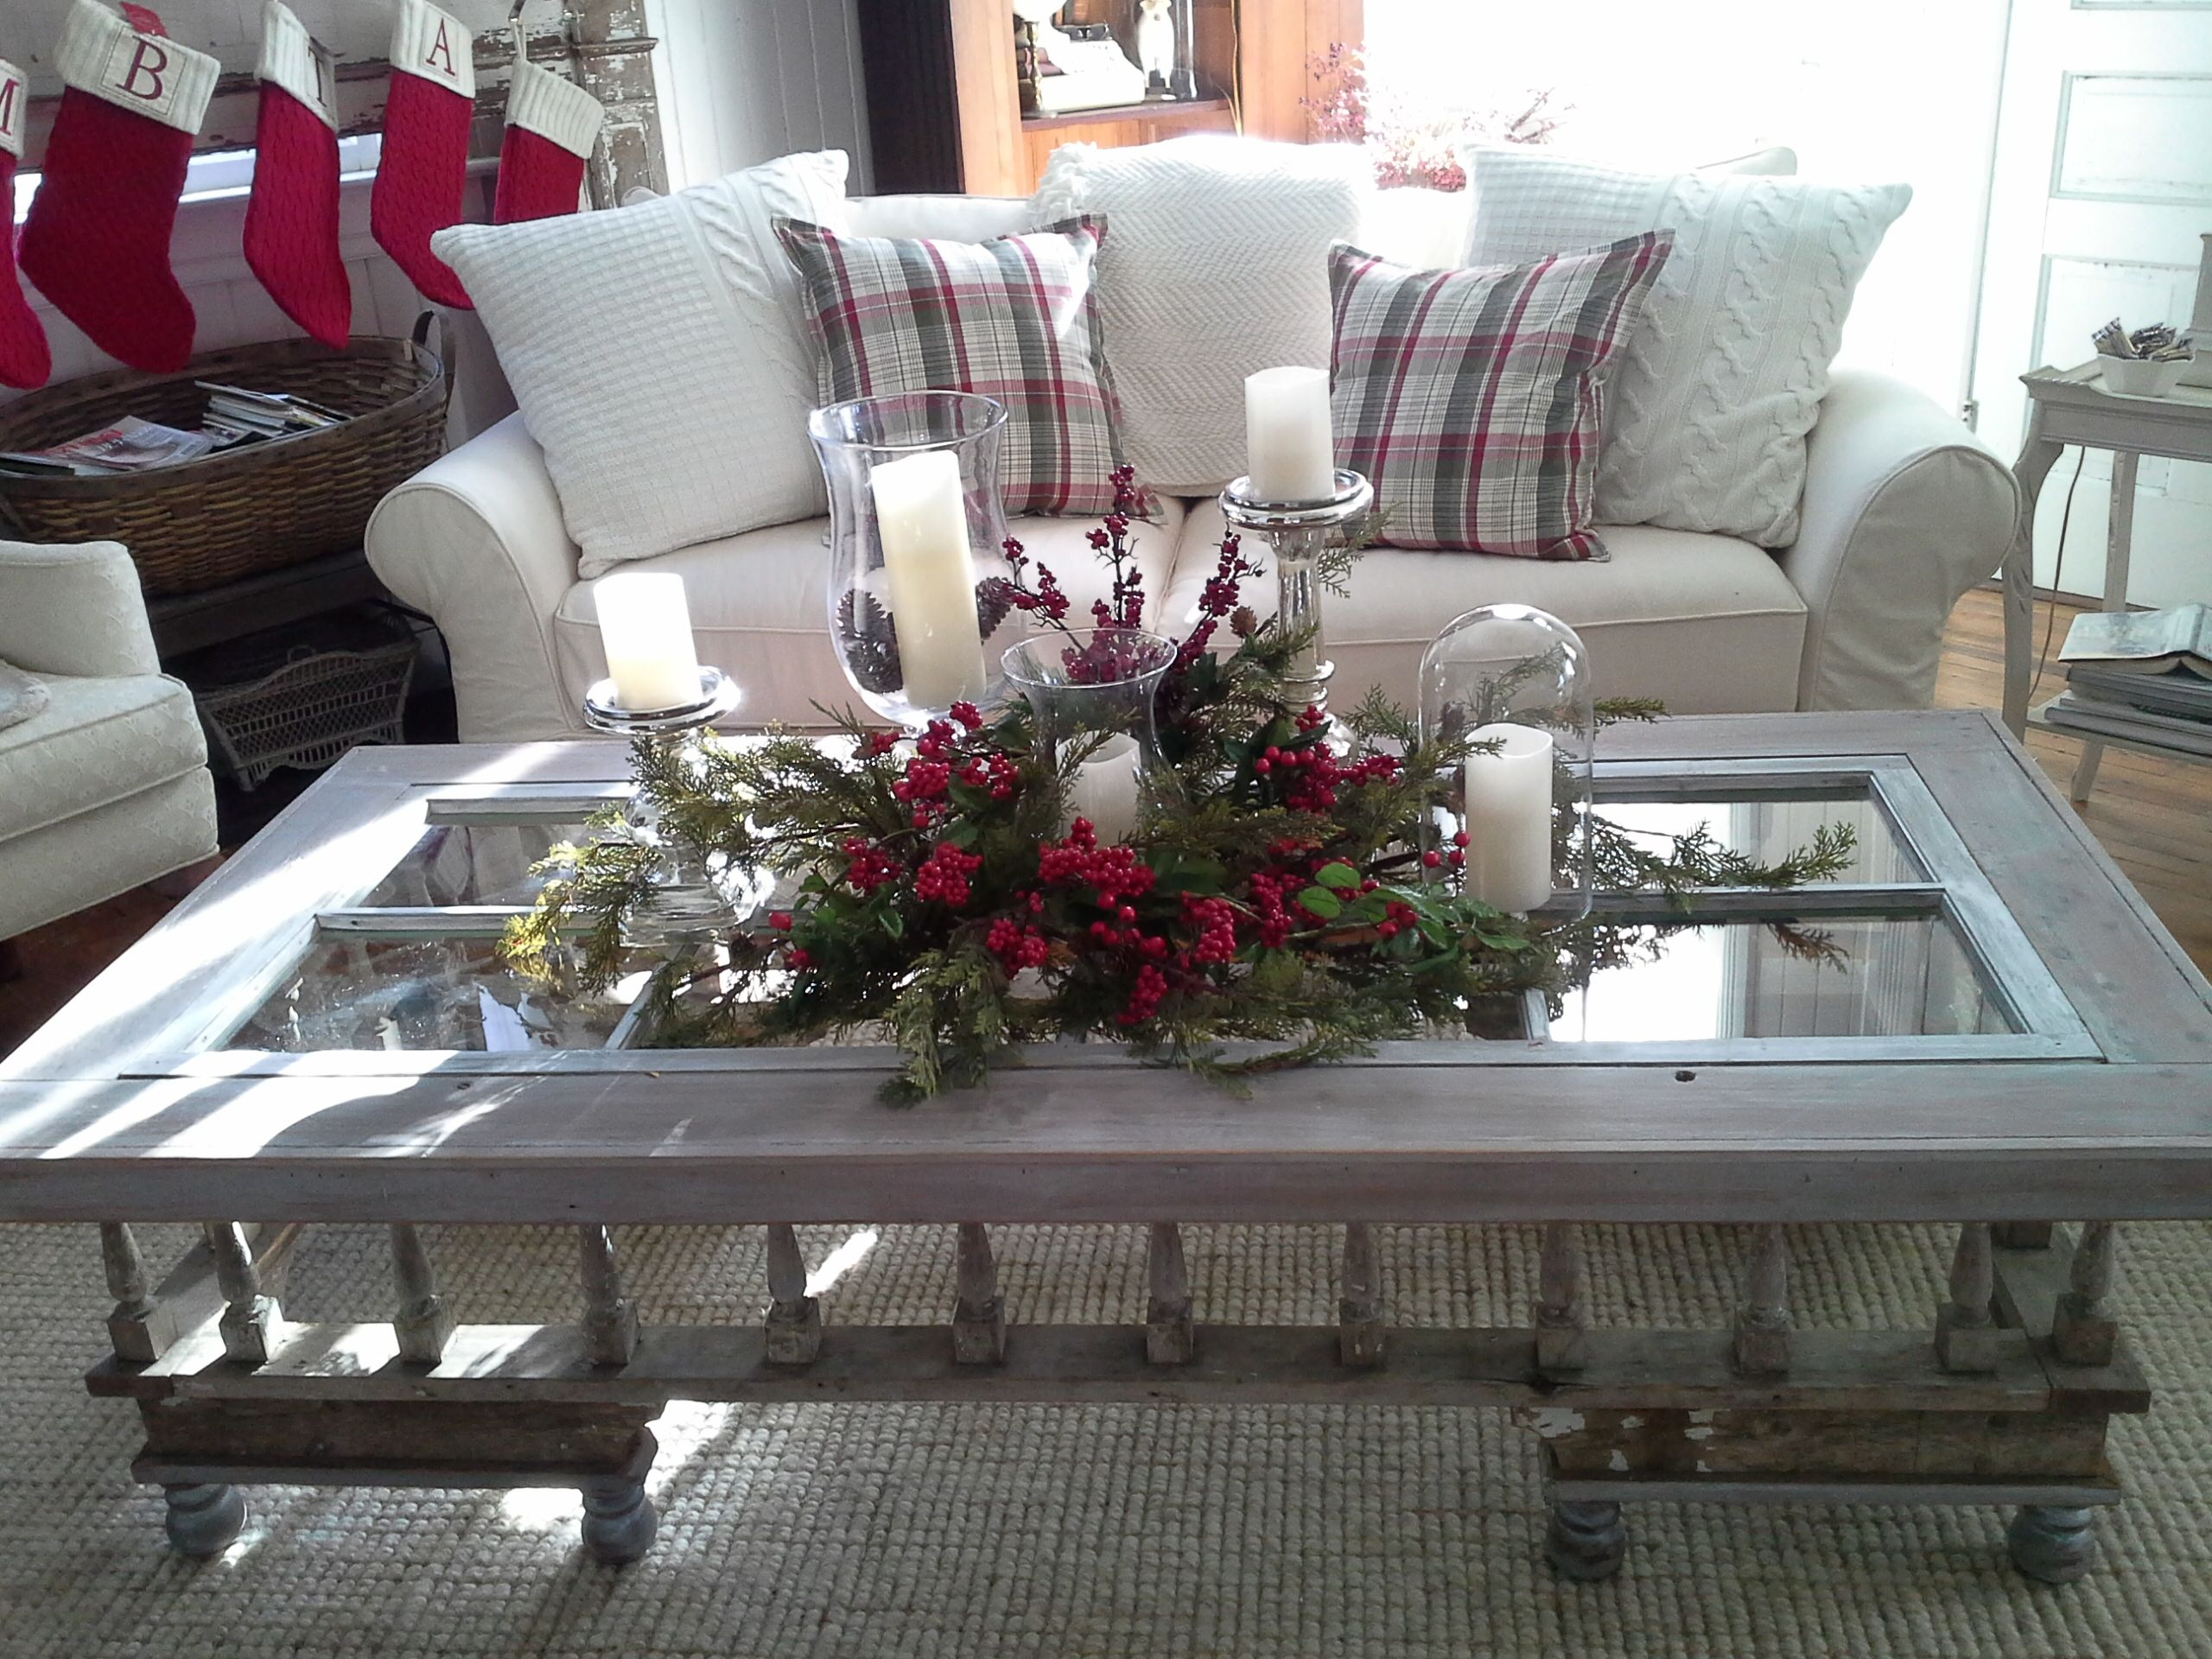 Holiday idea for coffee table | Christmas table decorations